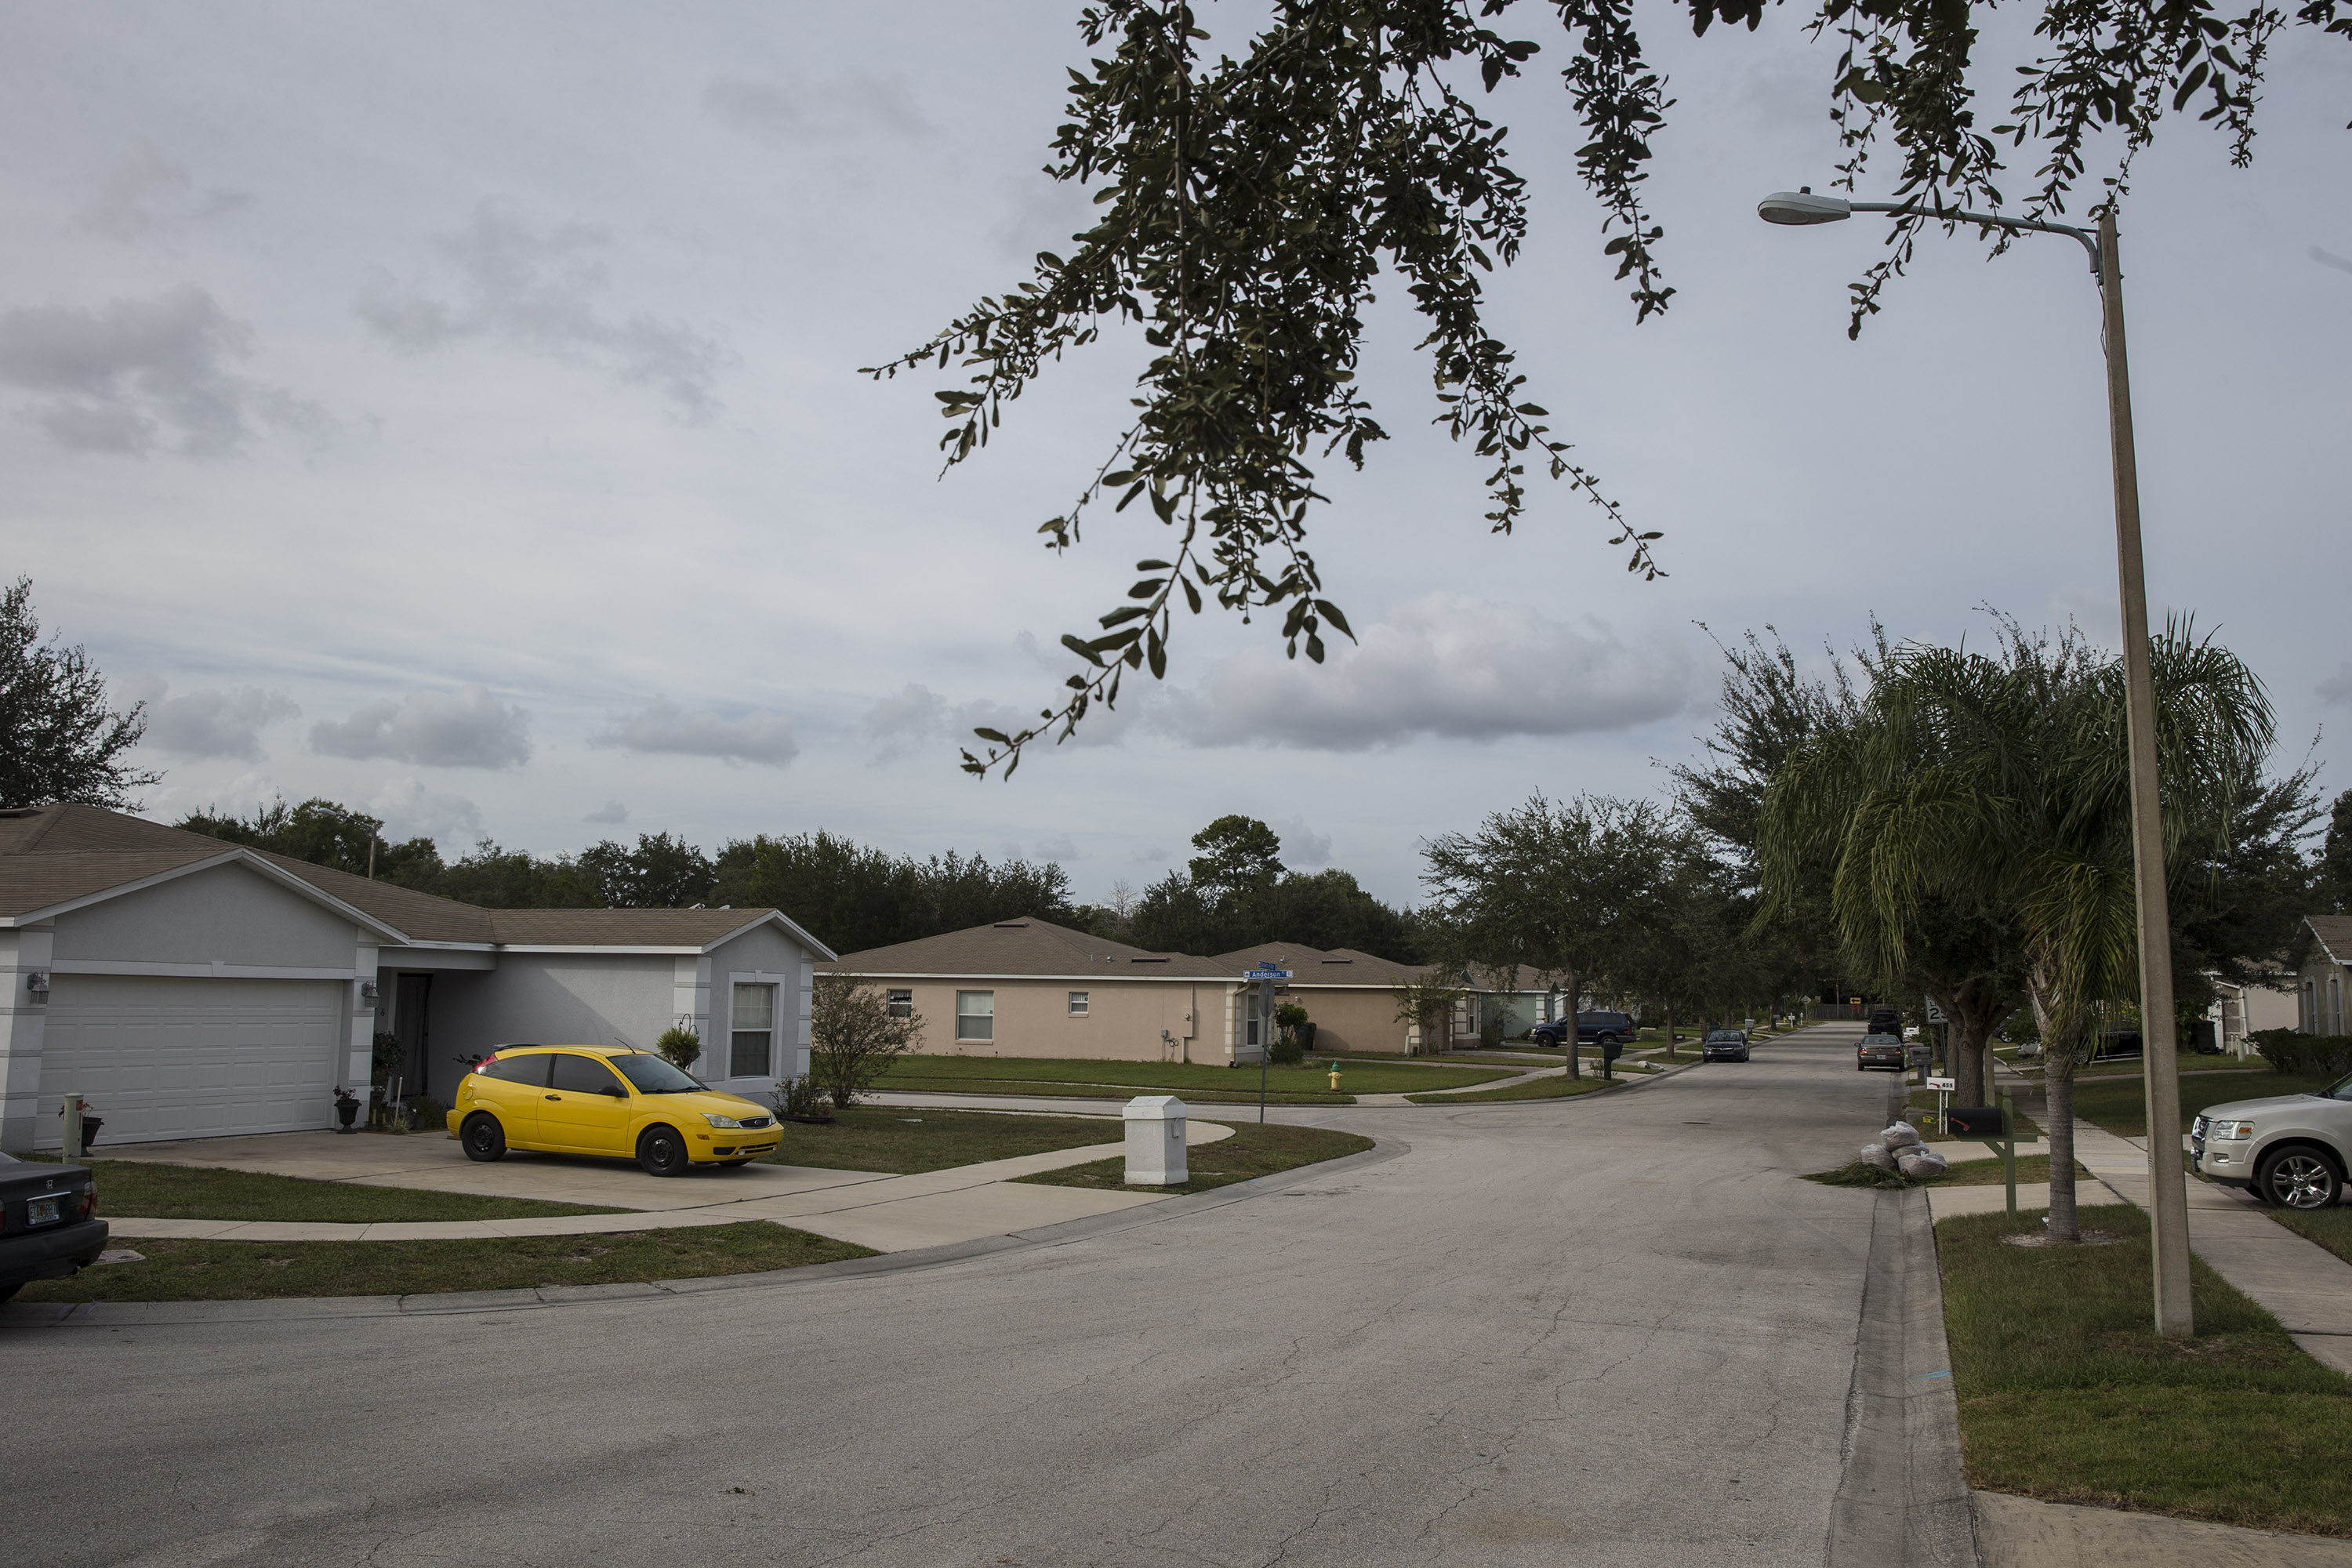 A residential neighborhood streets in Ocoee, Fl.